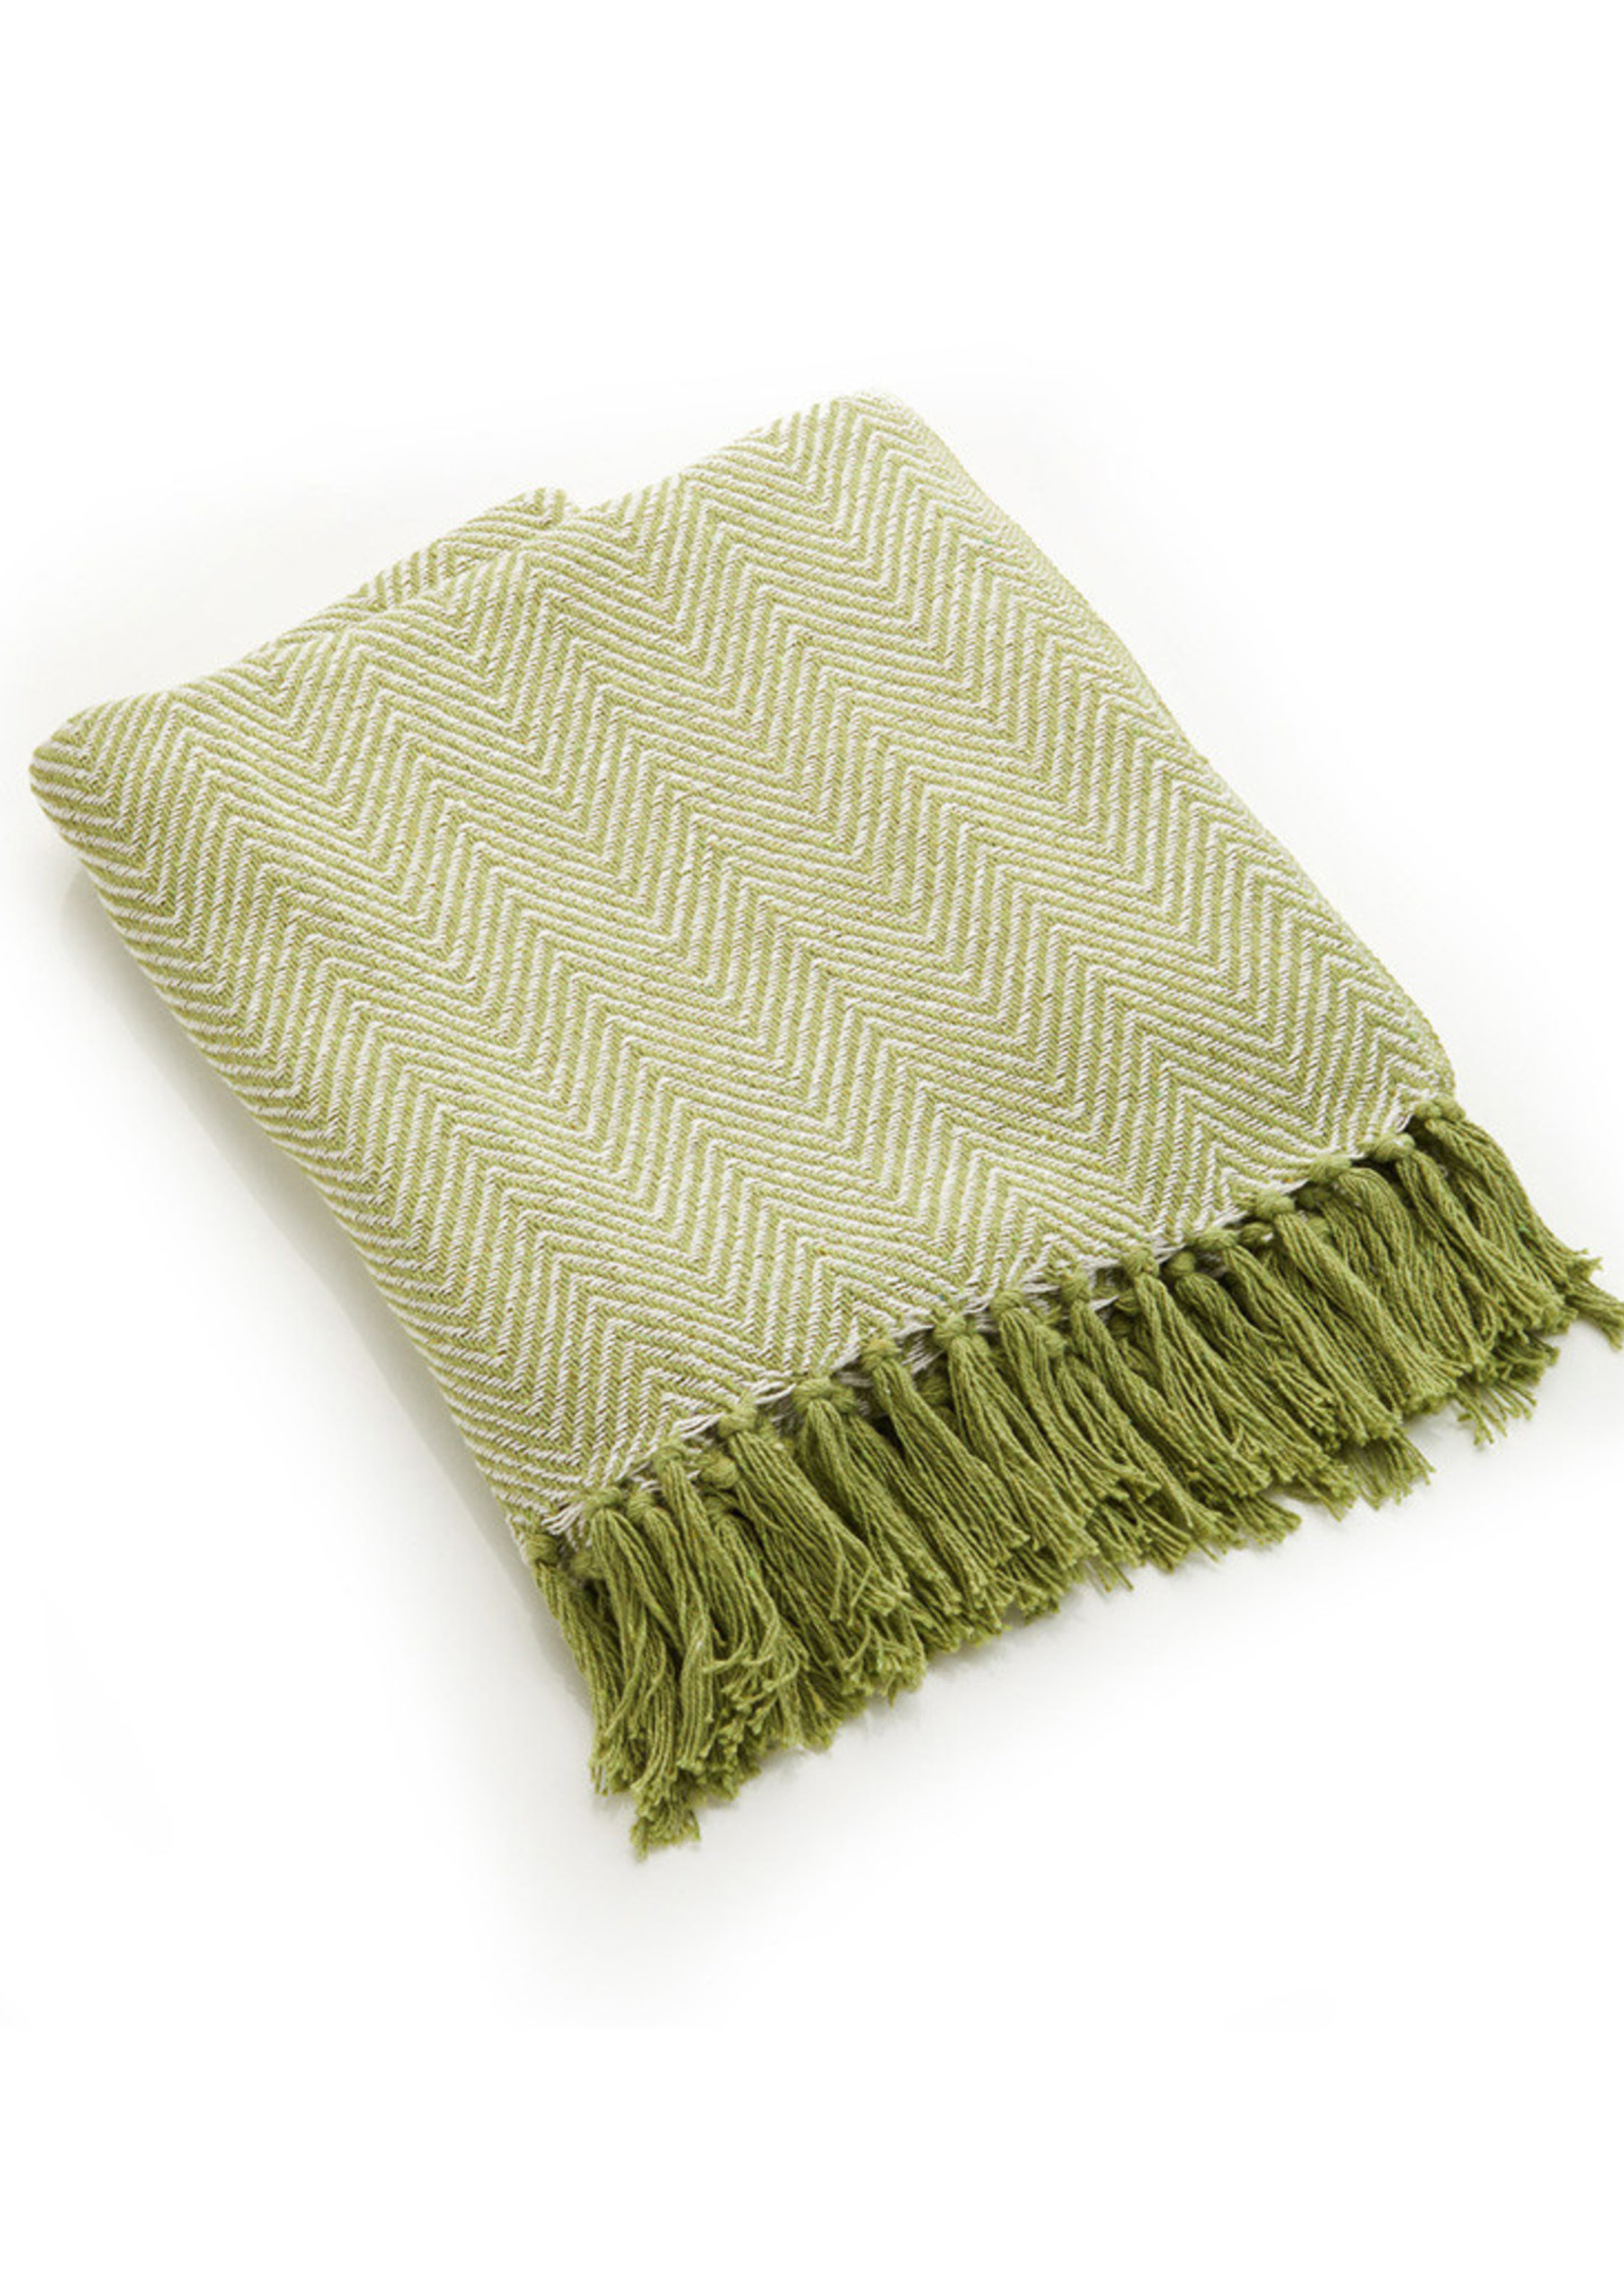 Green Chevron Rethread Throw